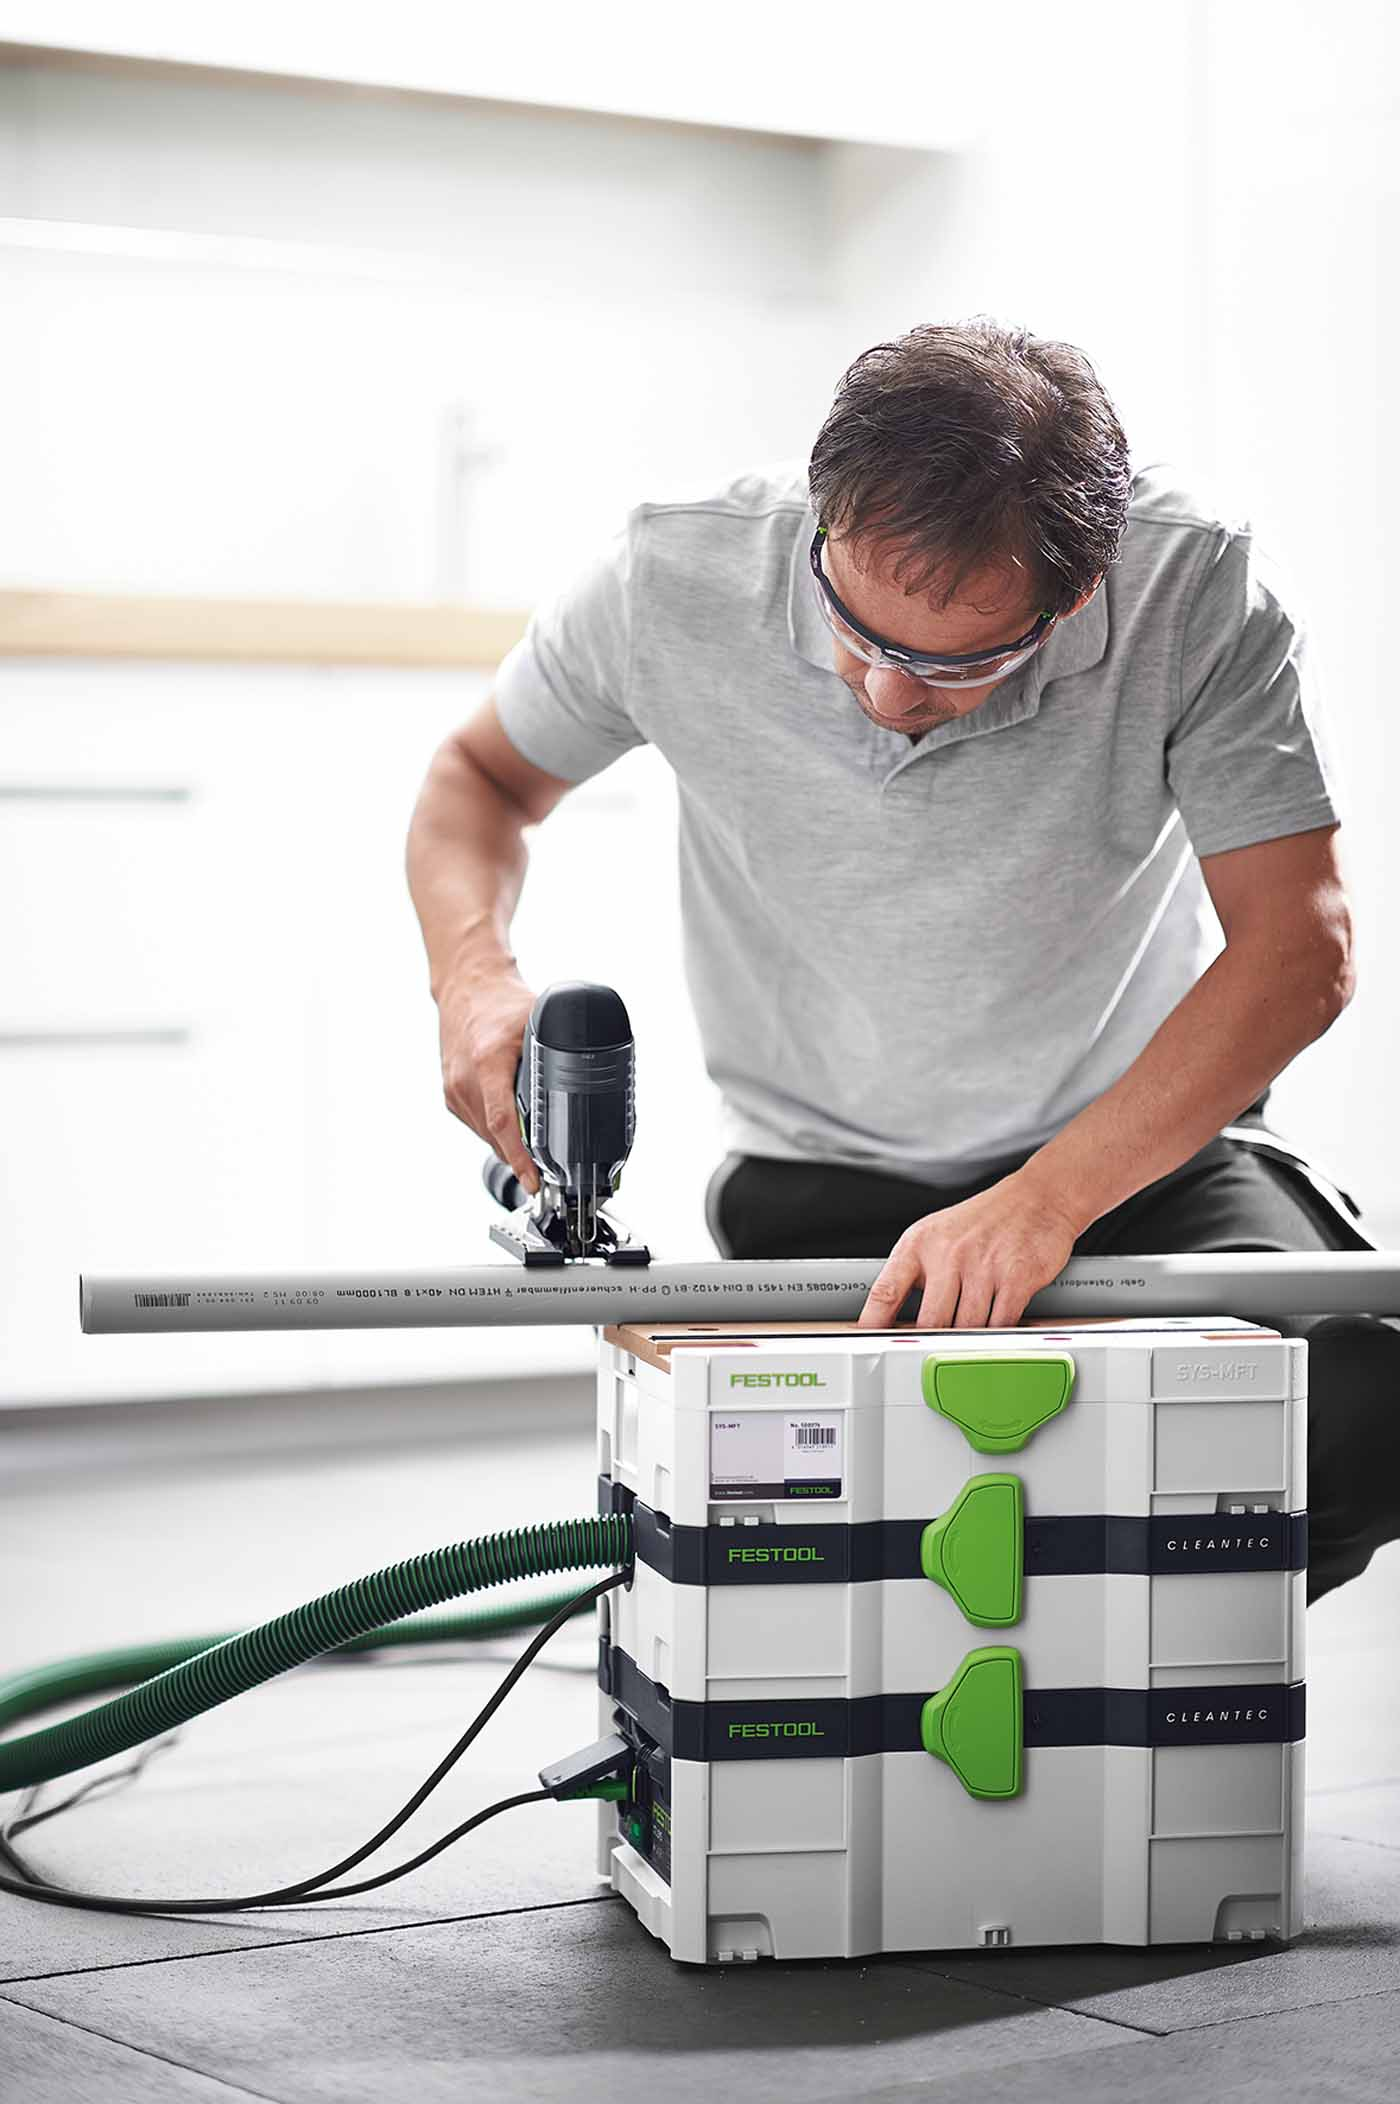 festool staubsauger im systainer absaugmobil ctl sys cleantec nr 584173 ebay. Black Bedroom Furniture Sets. Home Design Ideas